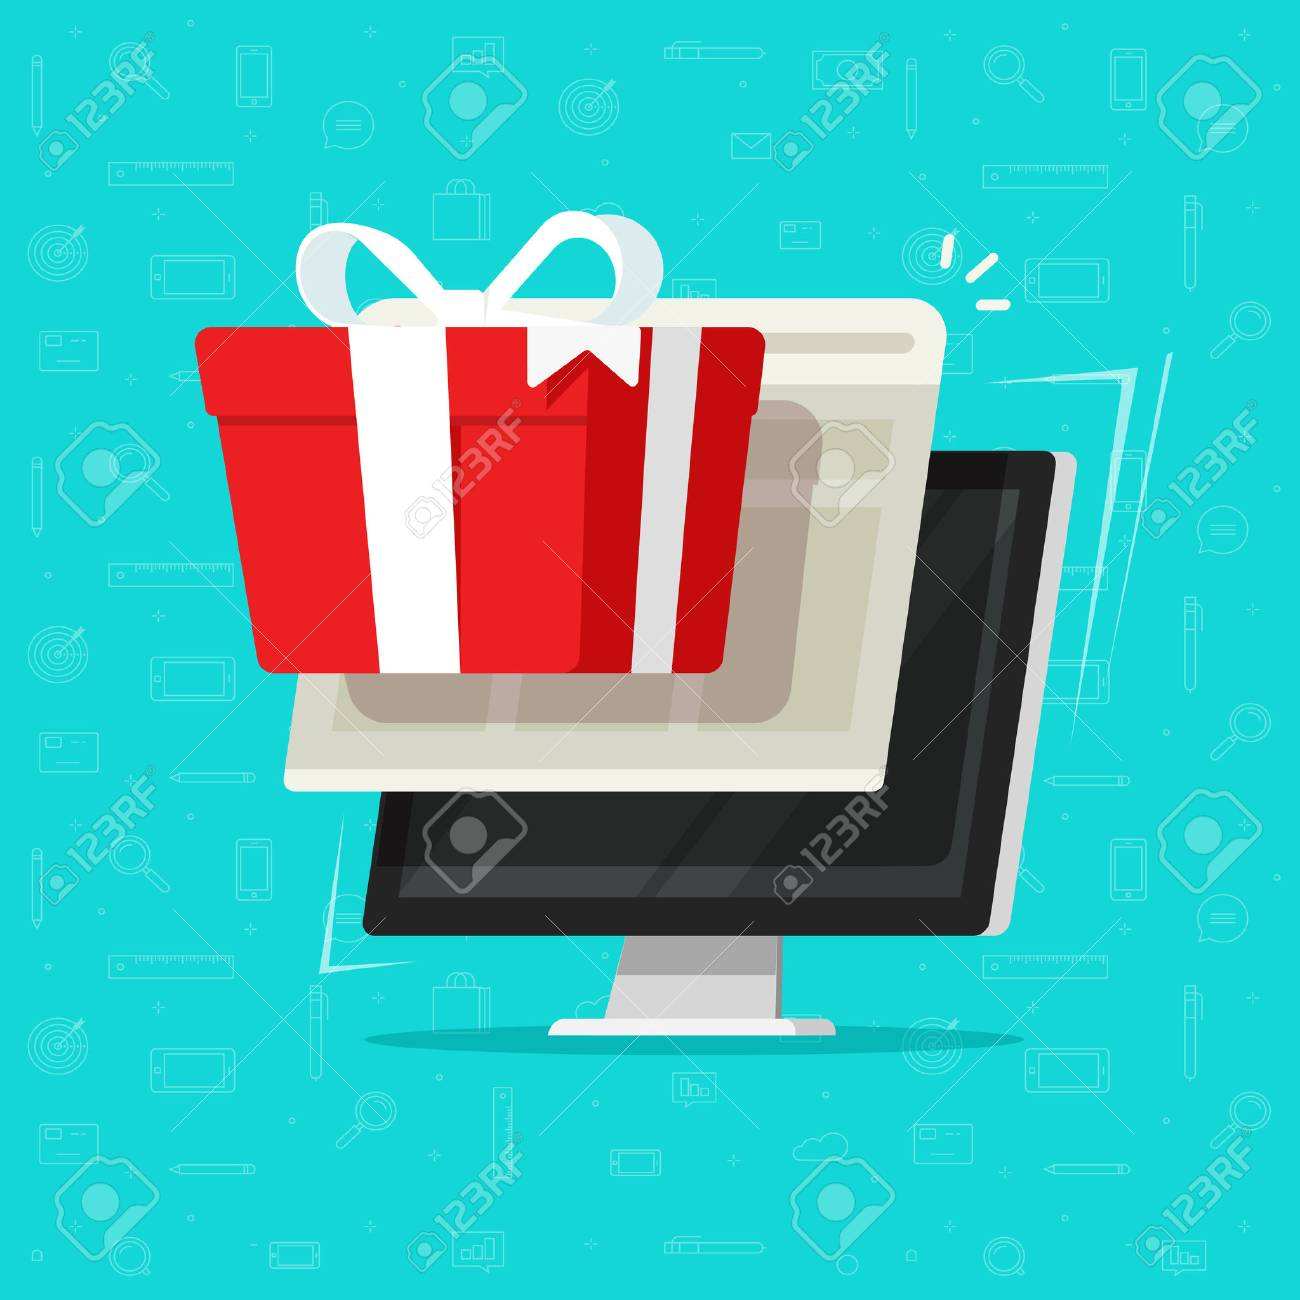 Gift from computer vector illustration, flat cartoon desktop pc and online digital gift box, concept of on-line bonus prize or internet promo reward, surprise received, electronic win or award - 94119642